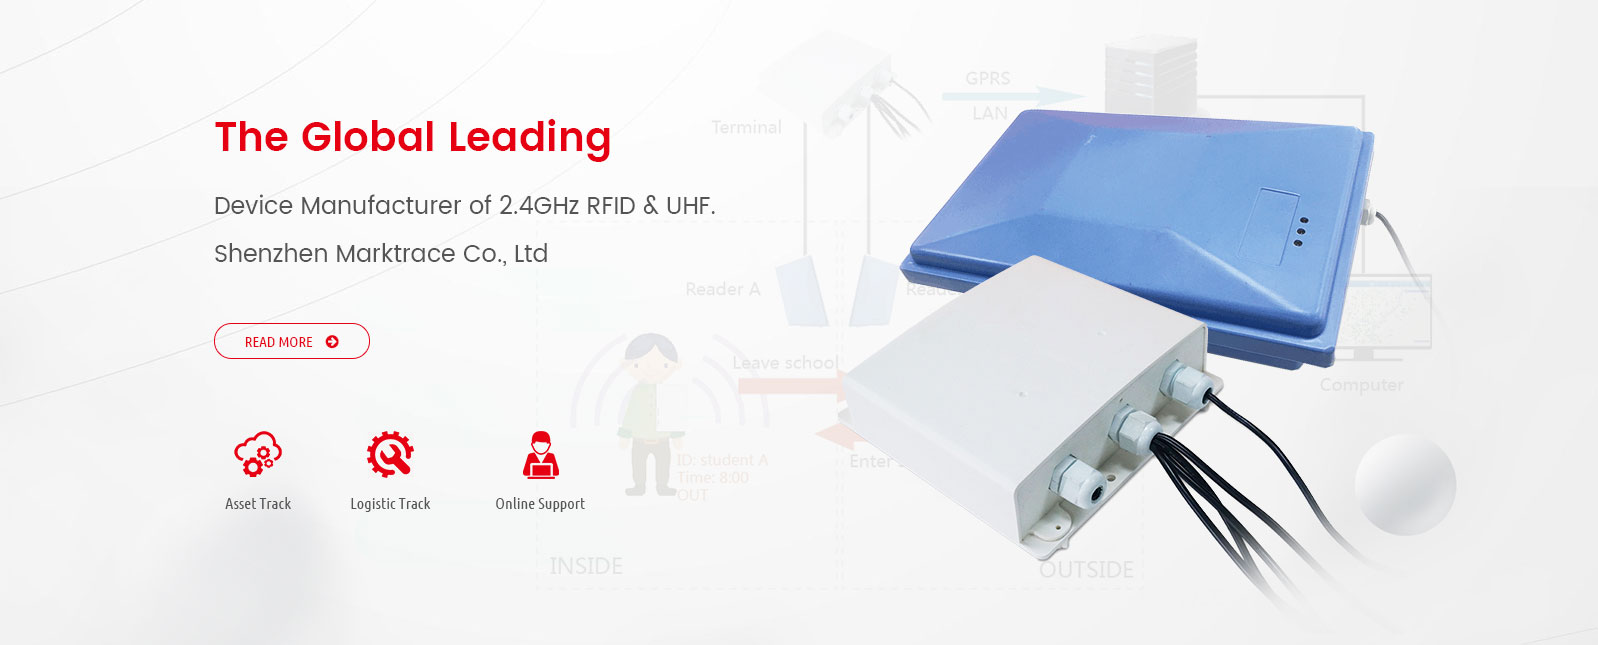 The Global Leading Device Manufacturer of 2.4GHz RFID & UHF